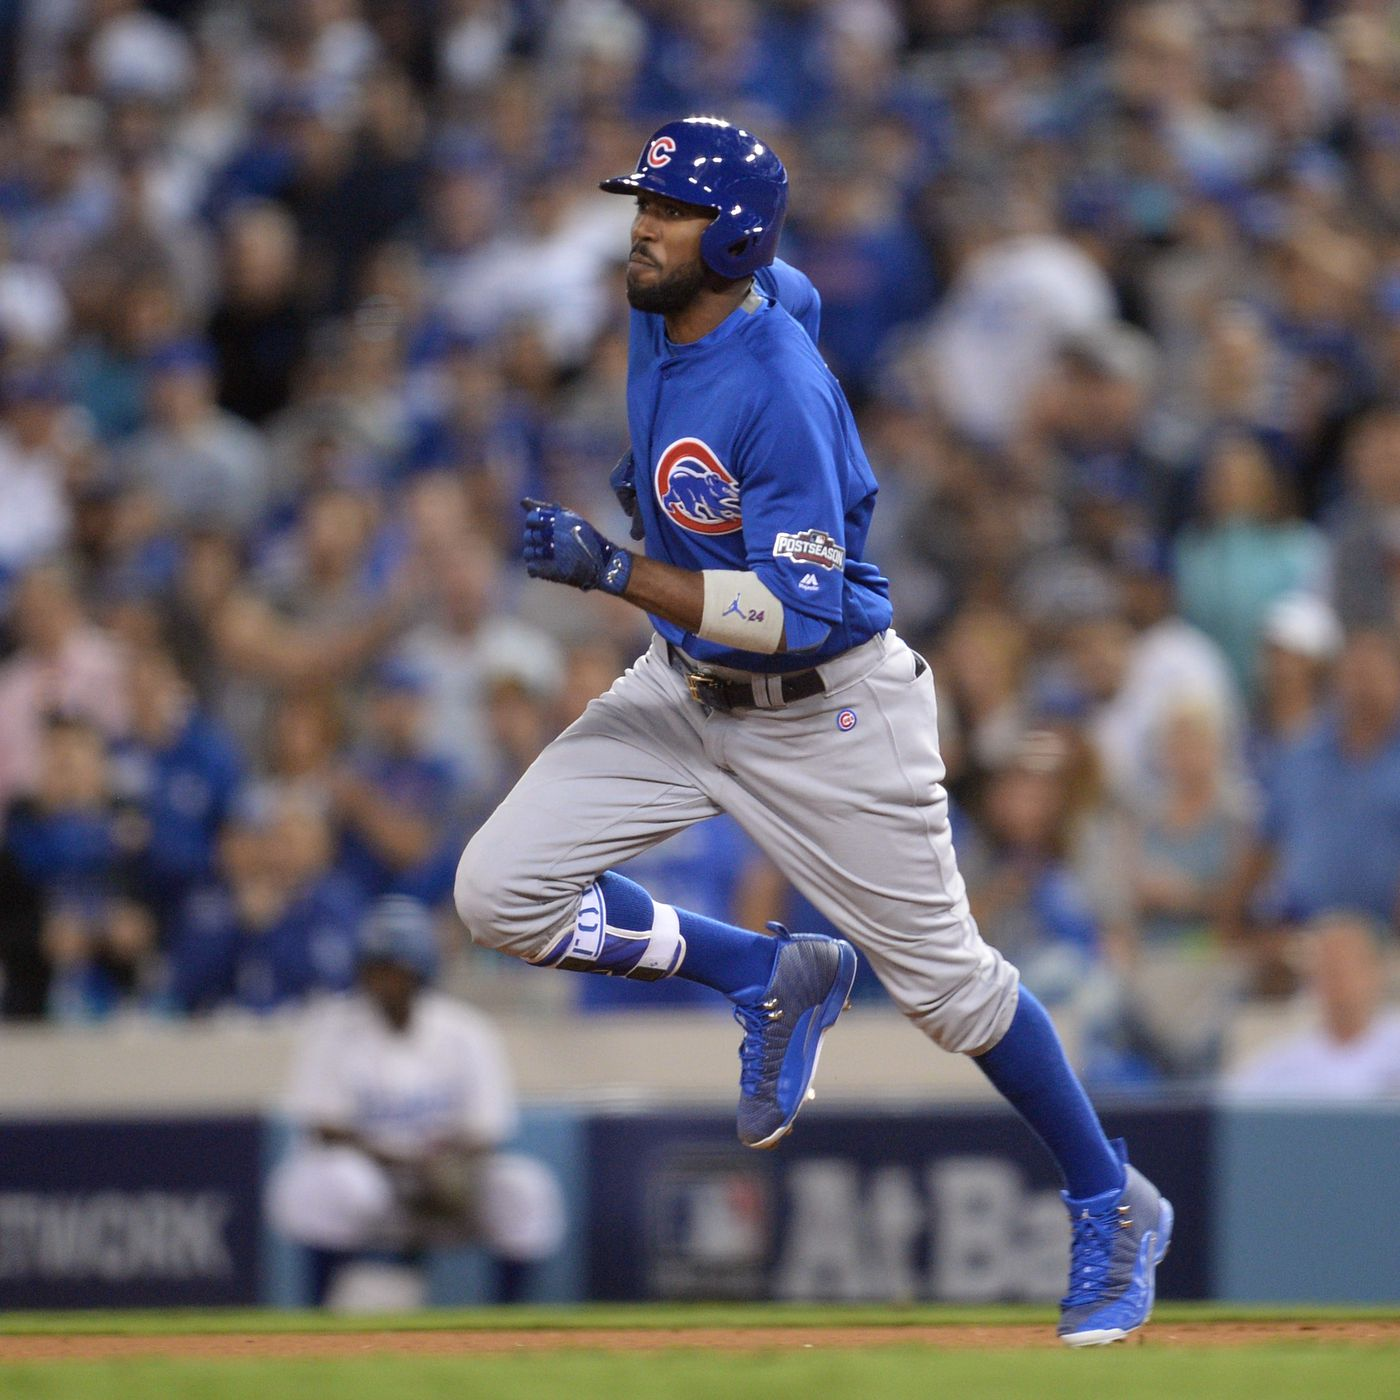 National League Championship Series Game 4 Preview: Cubs vs